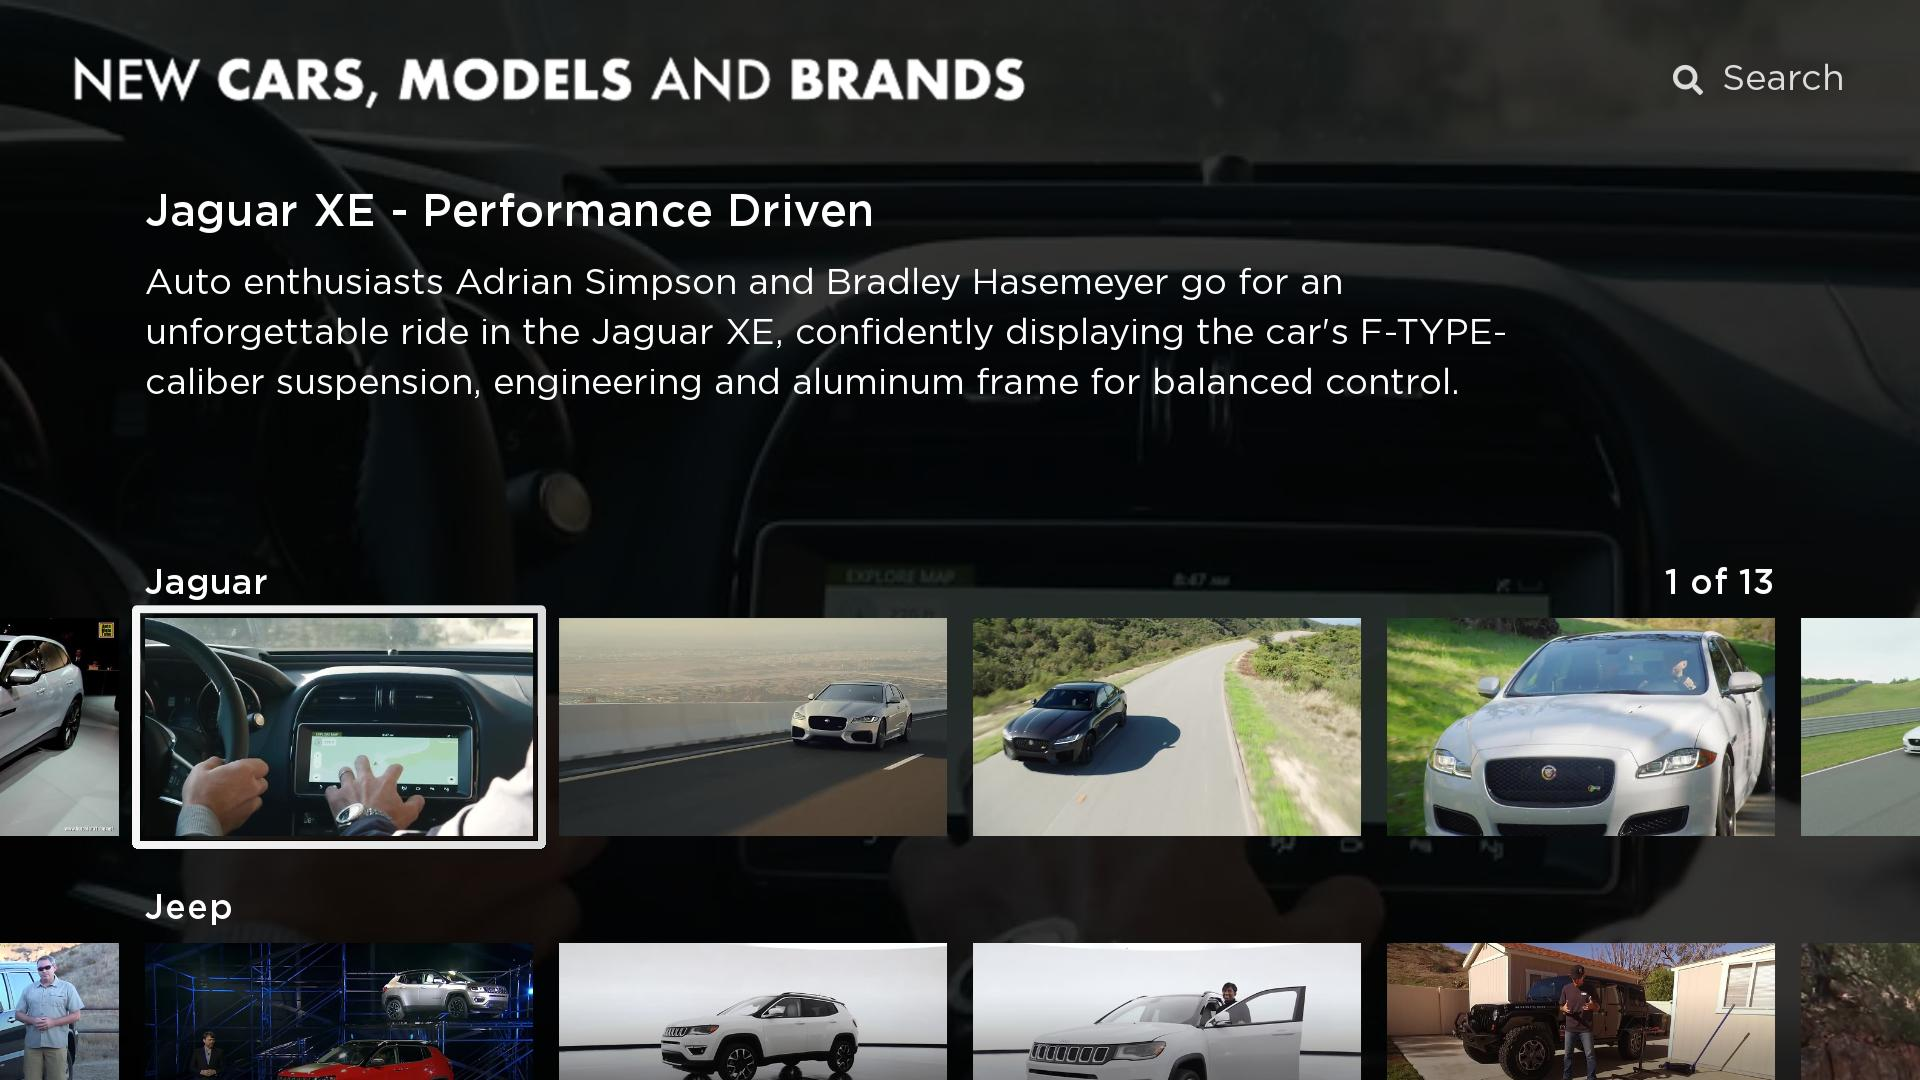 New Cars, Models and Brands Screenshot 002